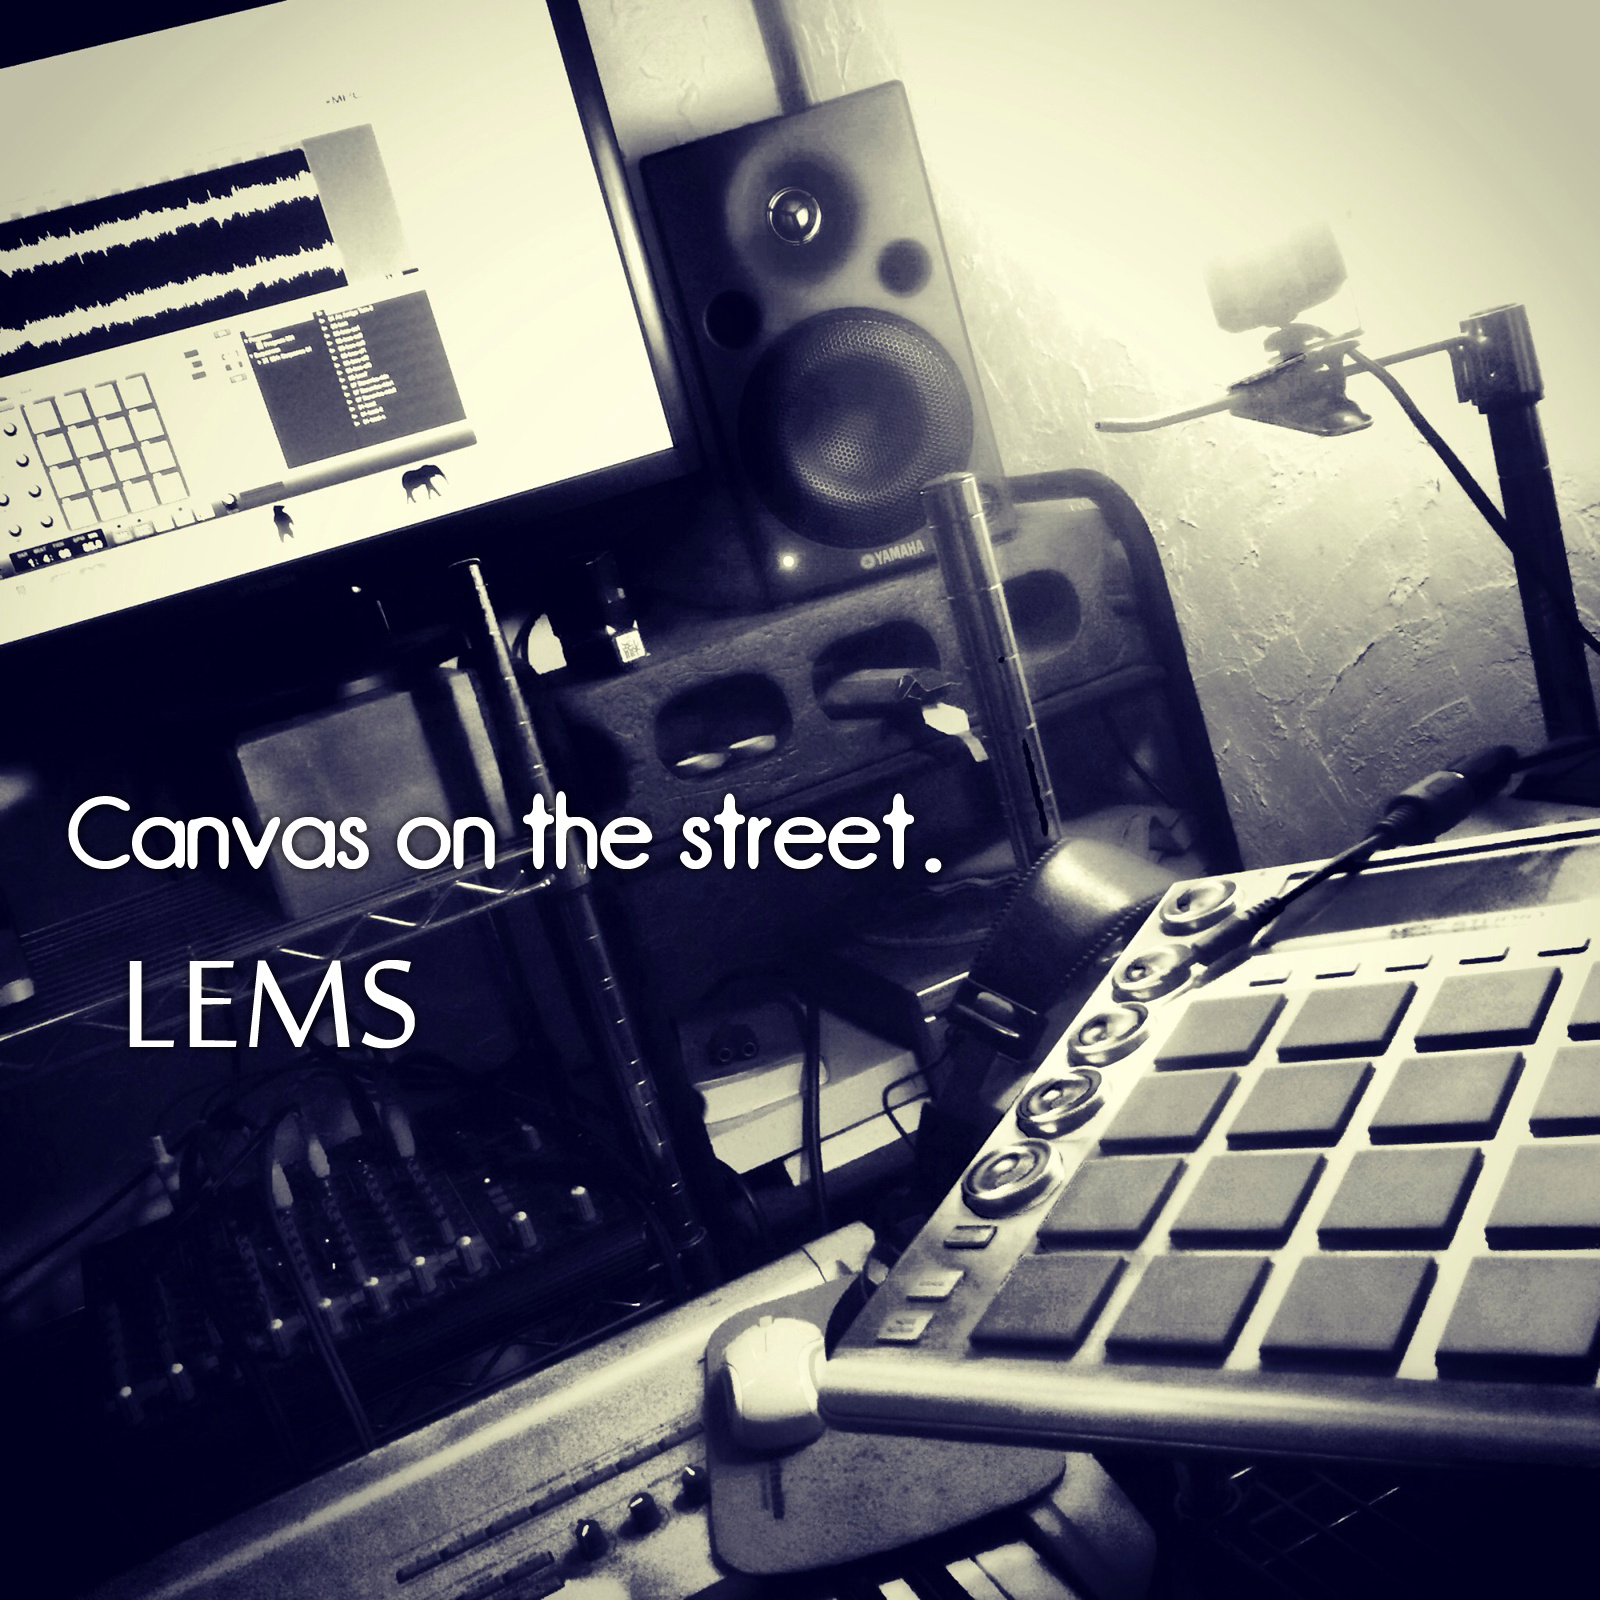 LEMS - canvas on the street